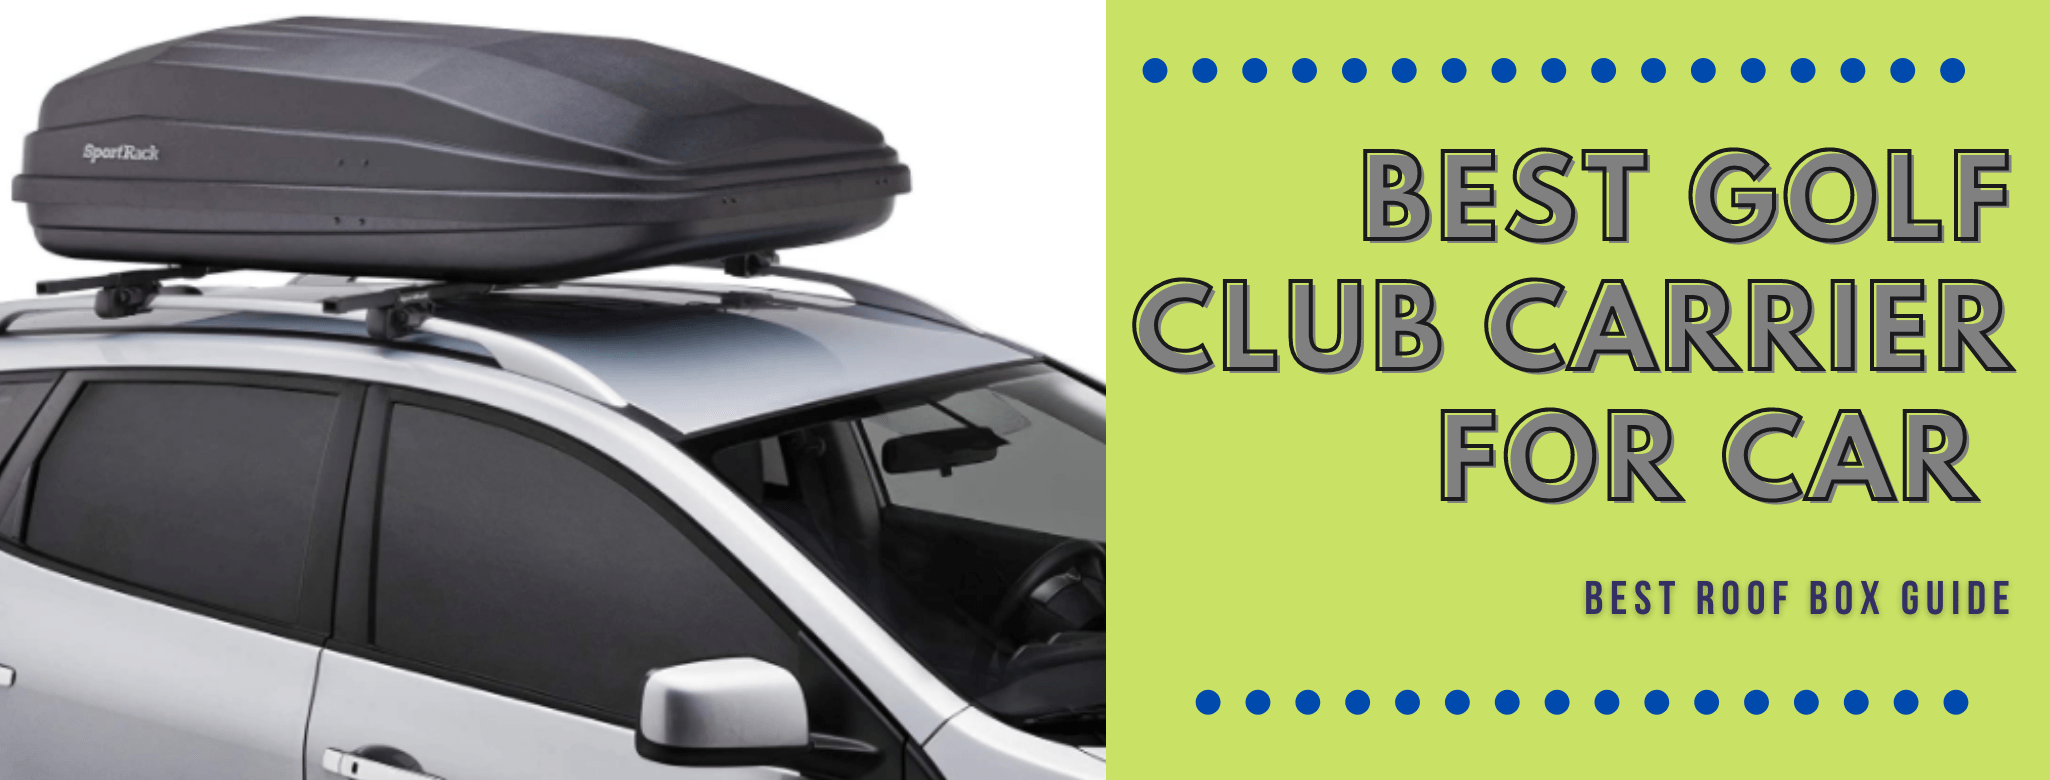 ✅ Best Golf Club Carrier For Car | Excellent Golf Carriers In 2021 🏌️♂️